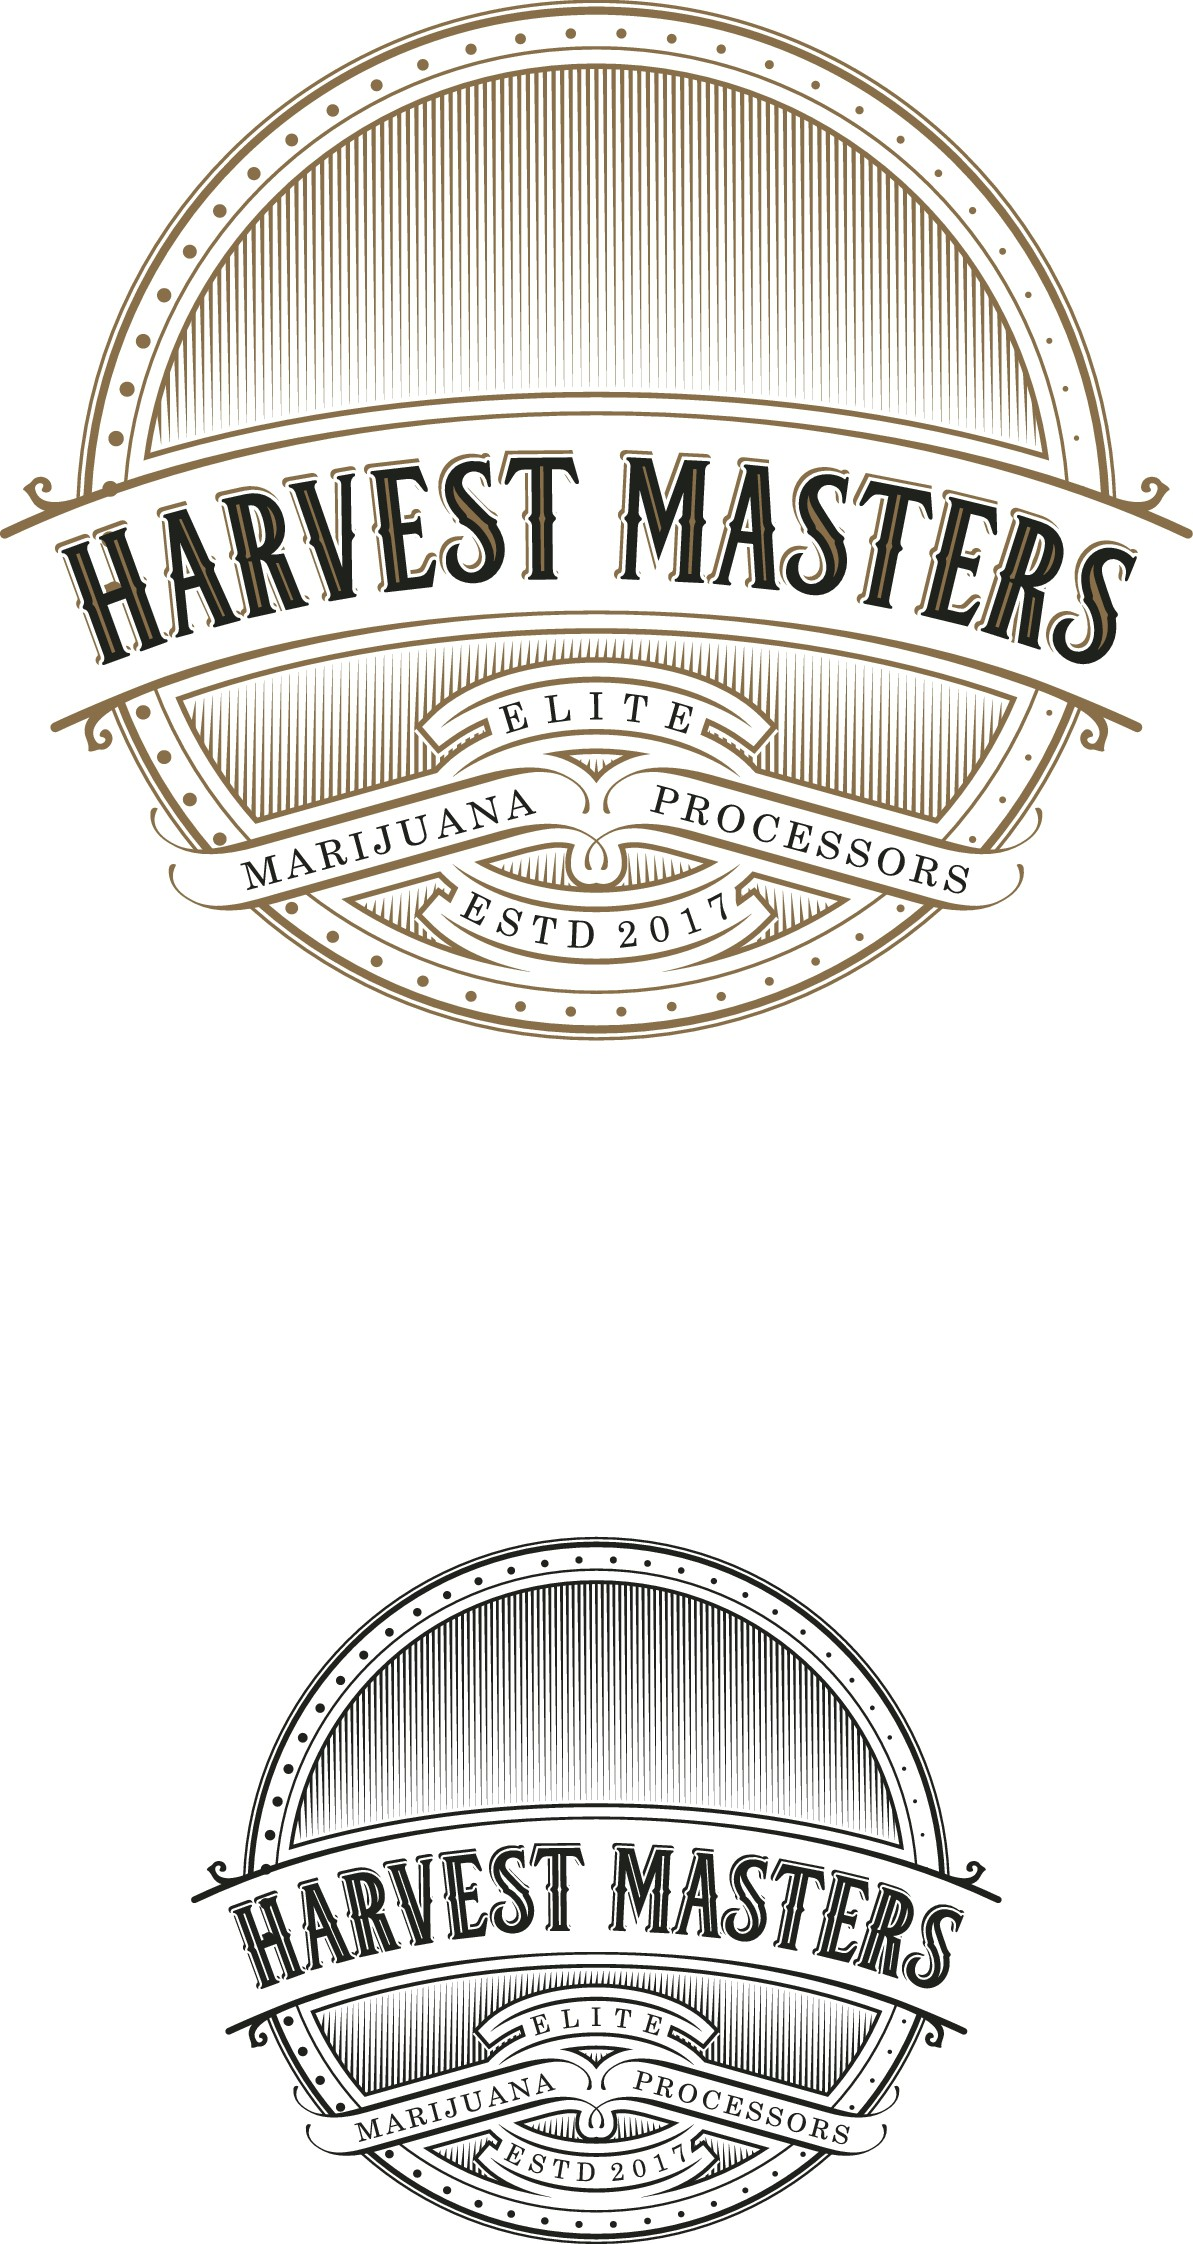 Harvest Masters simplification